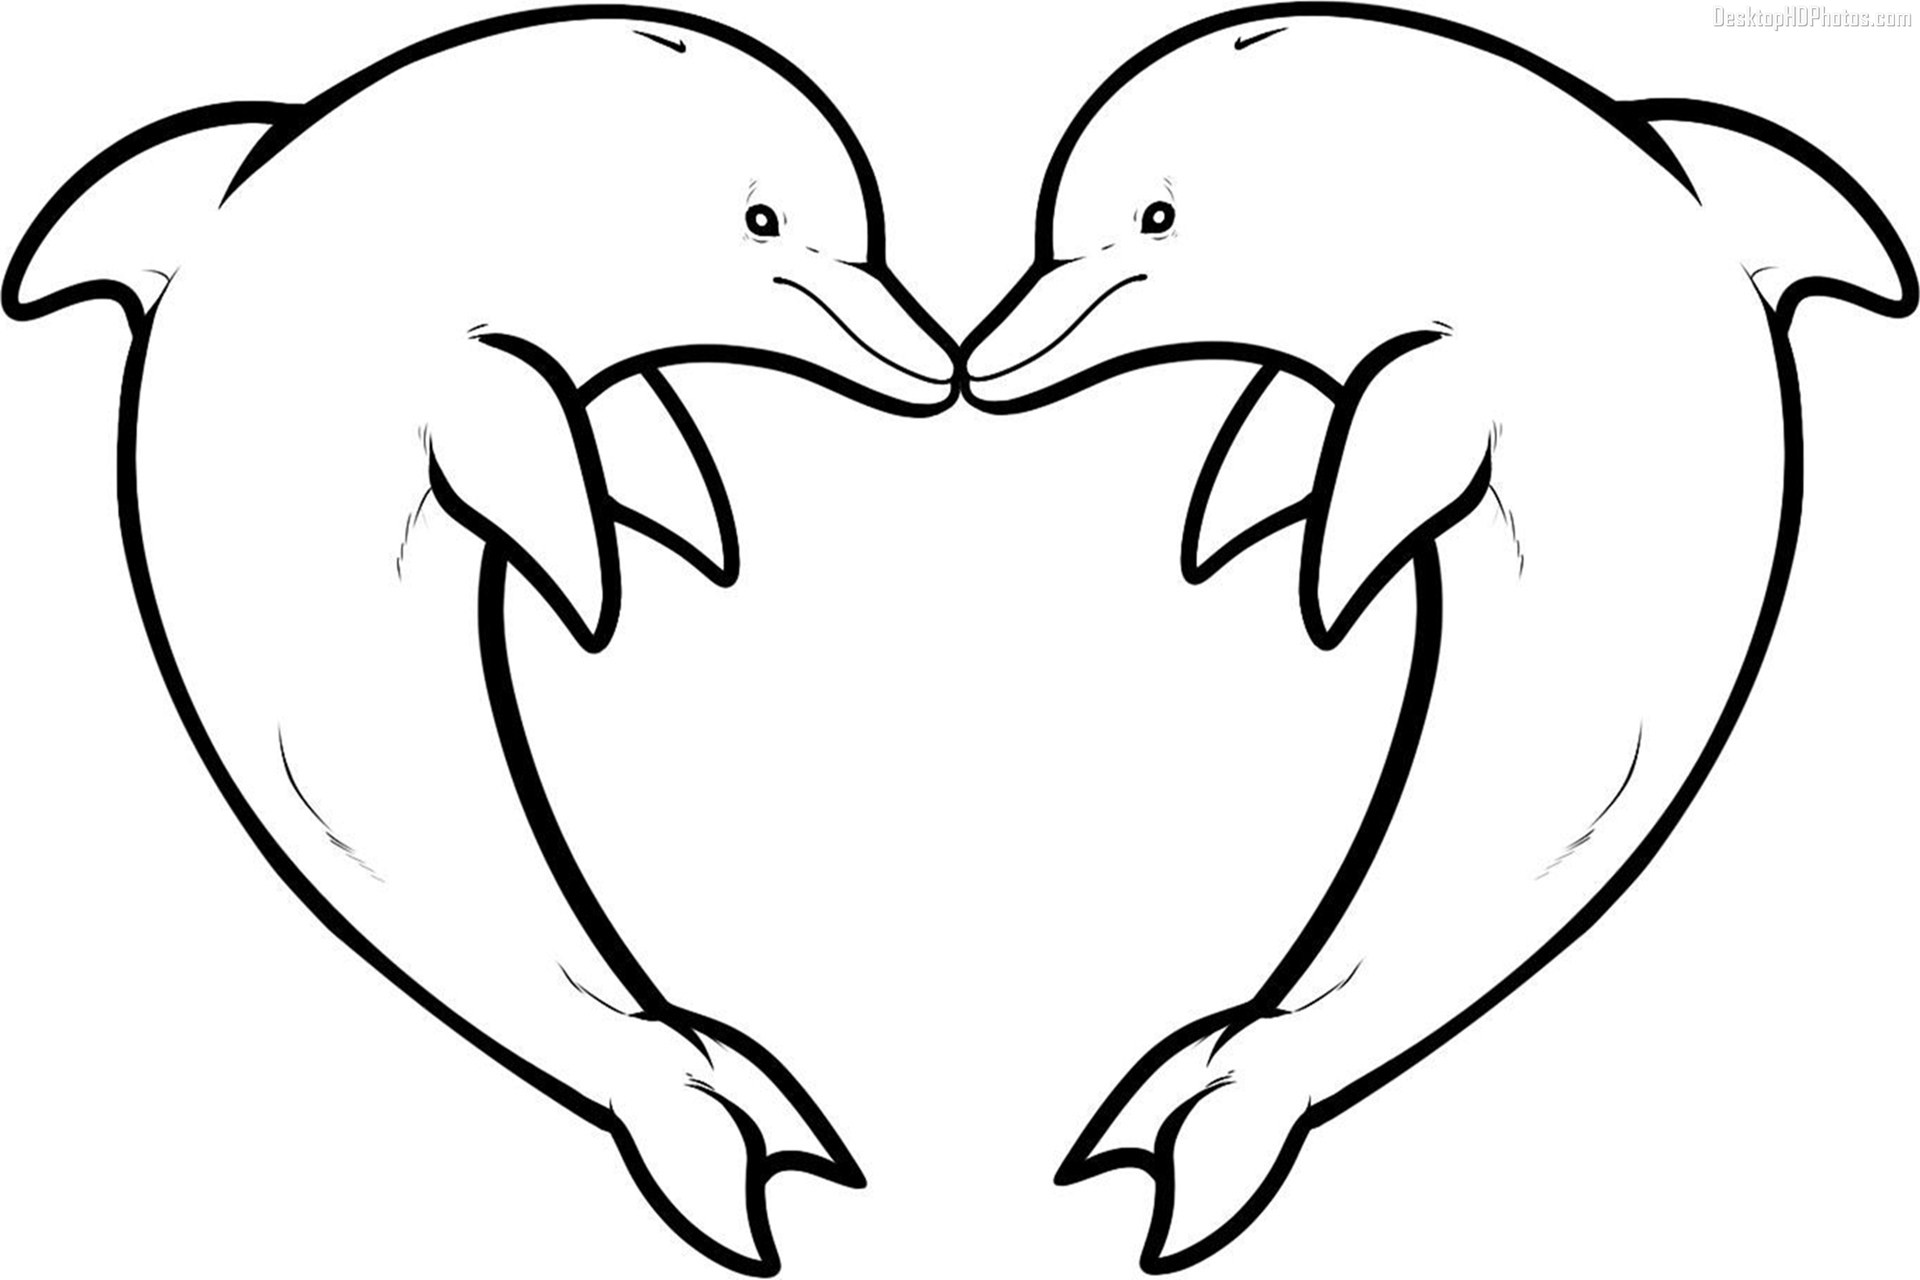 dolphin coloring pages free printable free easy to print dolphin coloring pages in 2020 free coloring dolphin pages printable